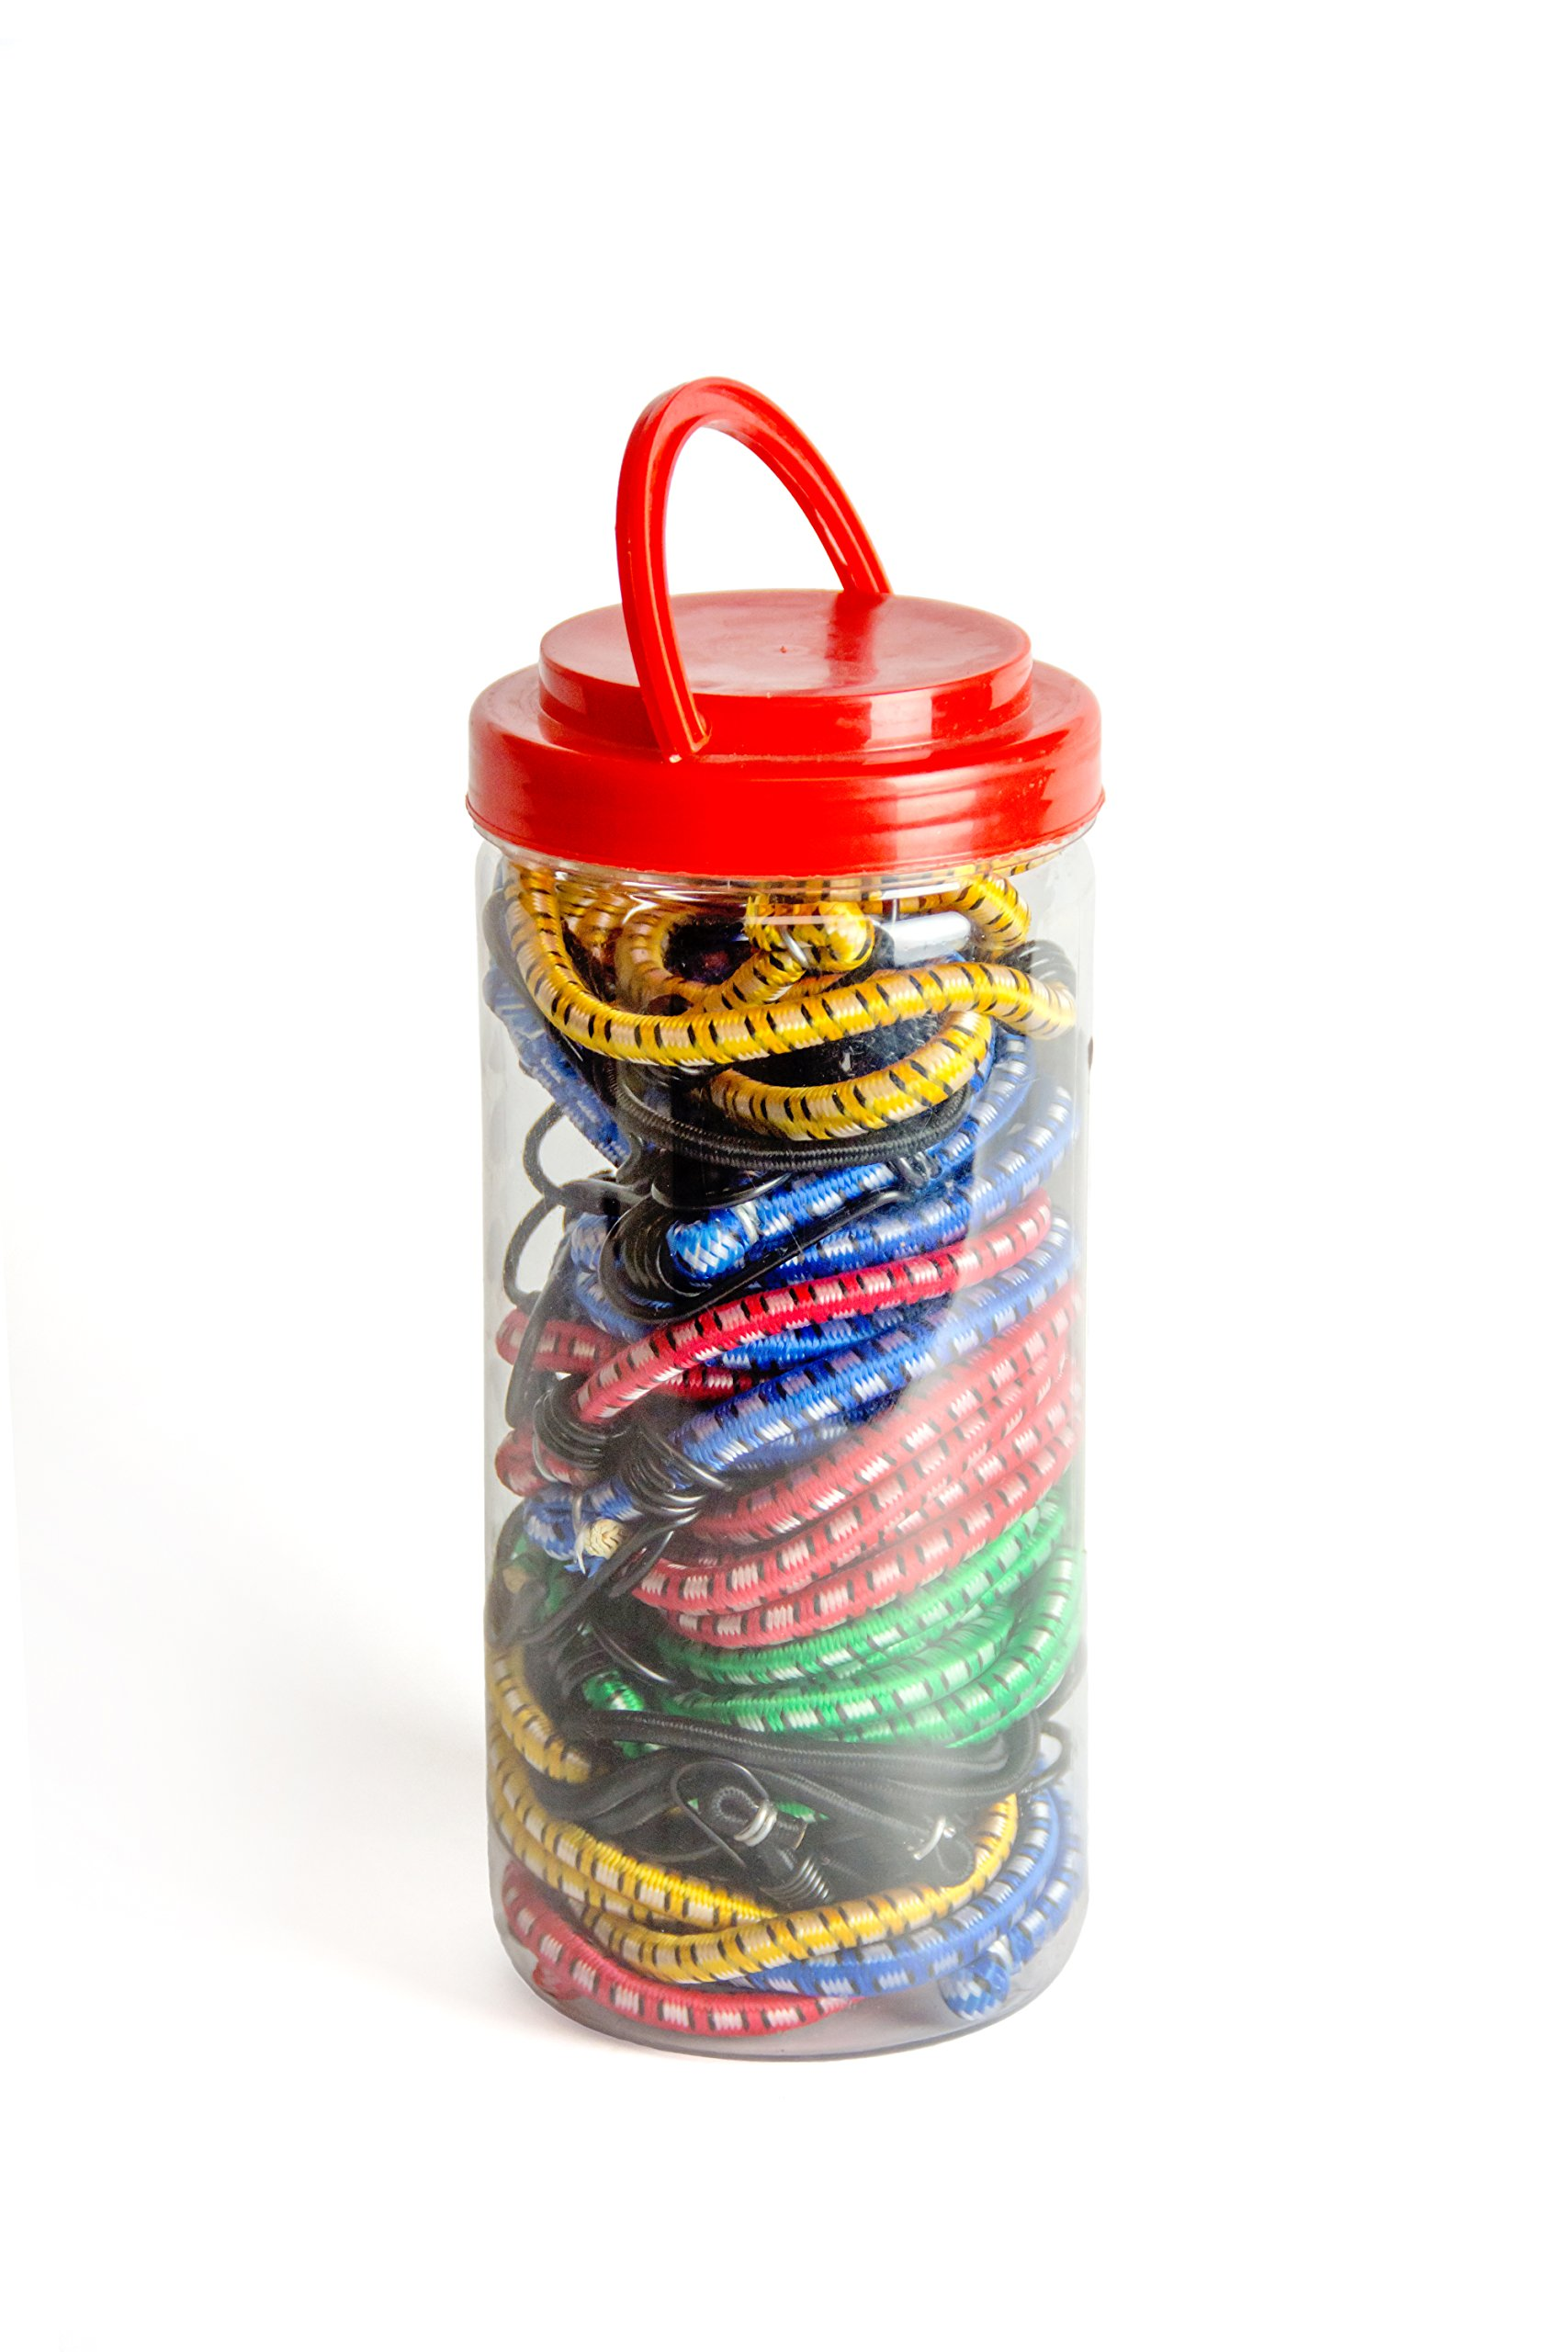 """Bungee cord assortment jar offers top quality rubber from Safe N' Tied. Bungees include 6-18"""", 4-24"""", 2-32"""", 2-40"""", and 6-10"""" cords, plus 4-canopy ties that hold in the harshest elements."""